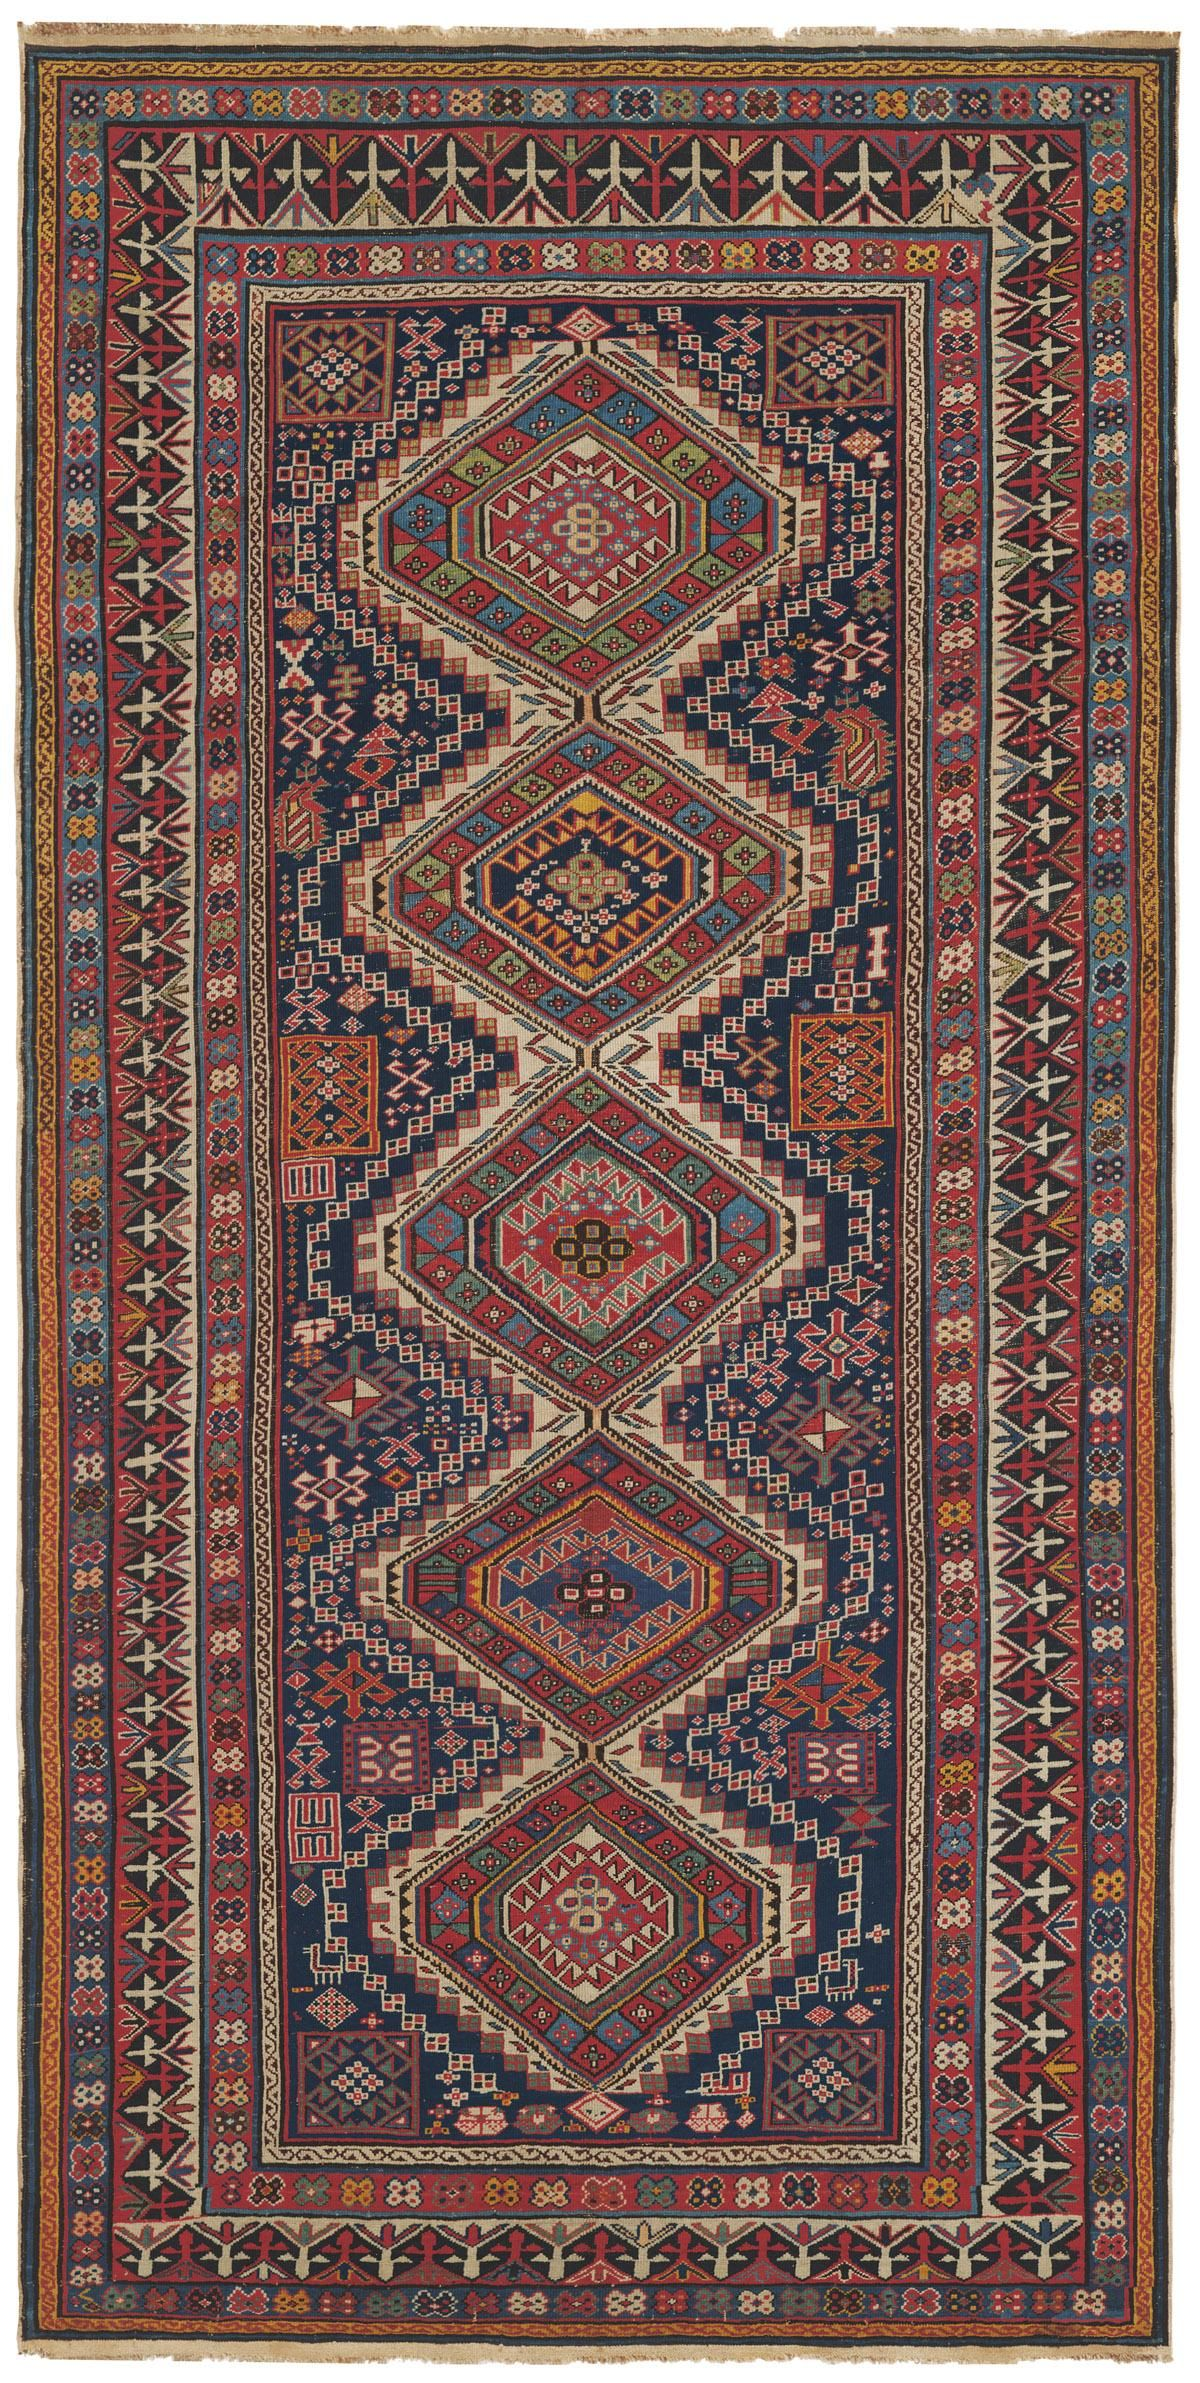 Basic Overview Of Antique Collectible Caucasian Rugs And Carpets Rugs On Carpet Rugs Carpet